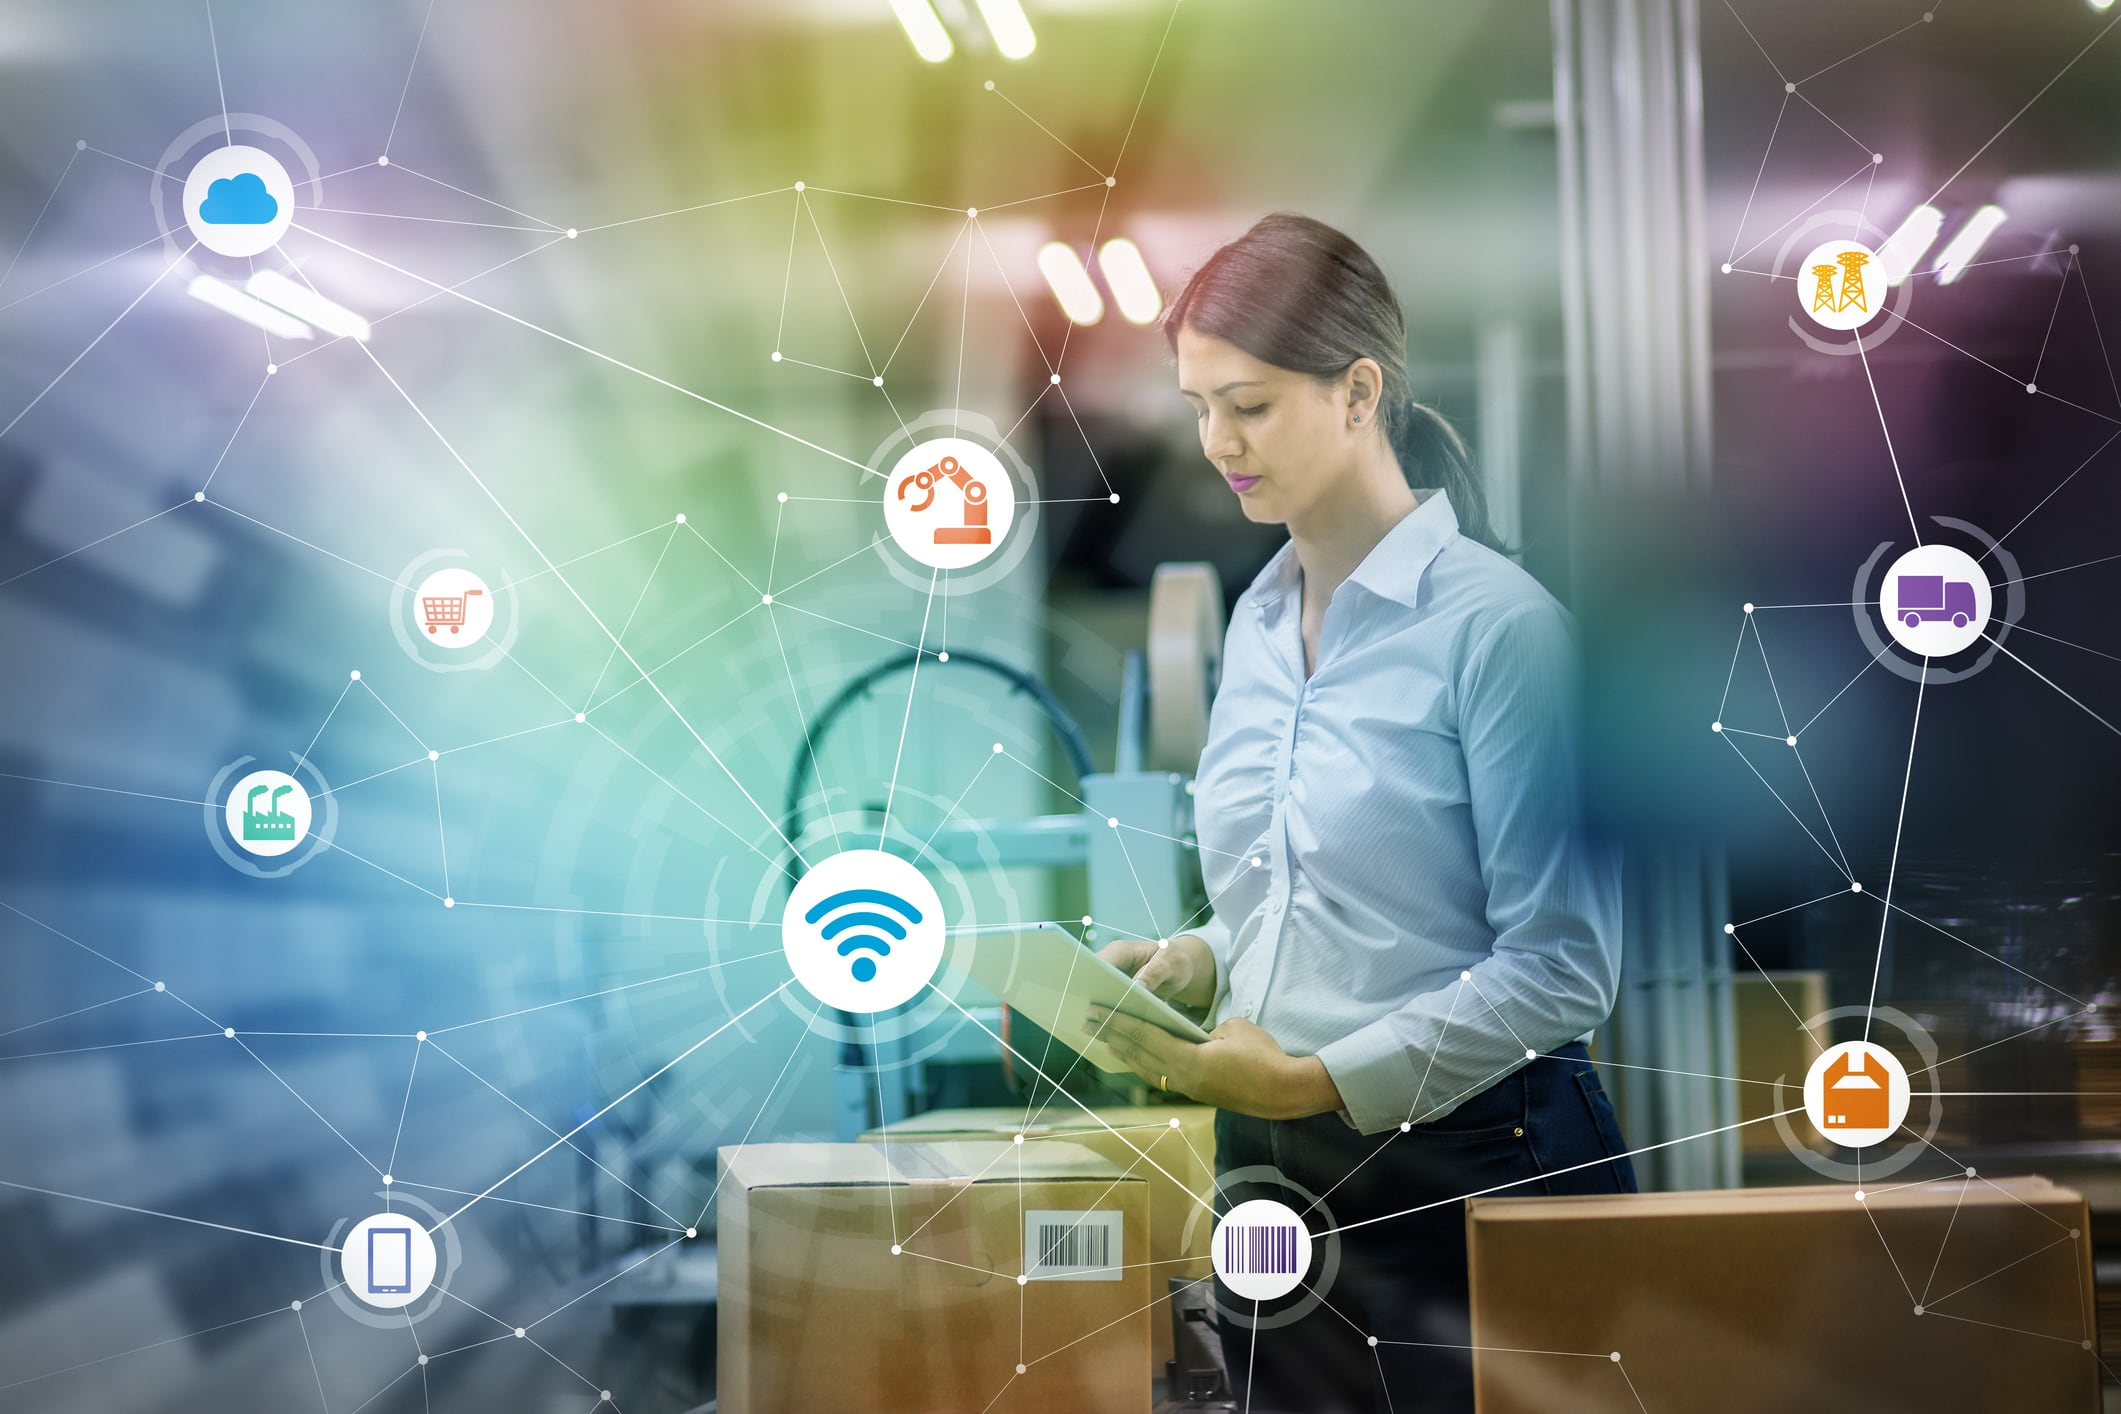 industry and Internet of Things concept. woman working in factory and wireless communication network. Industry4.0.